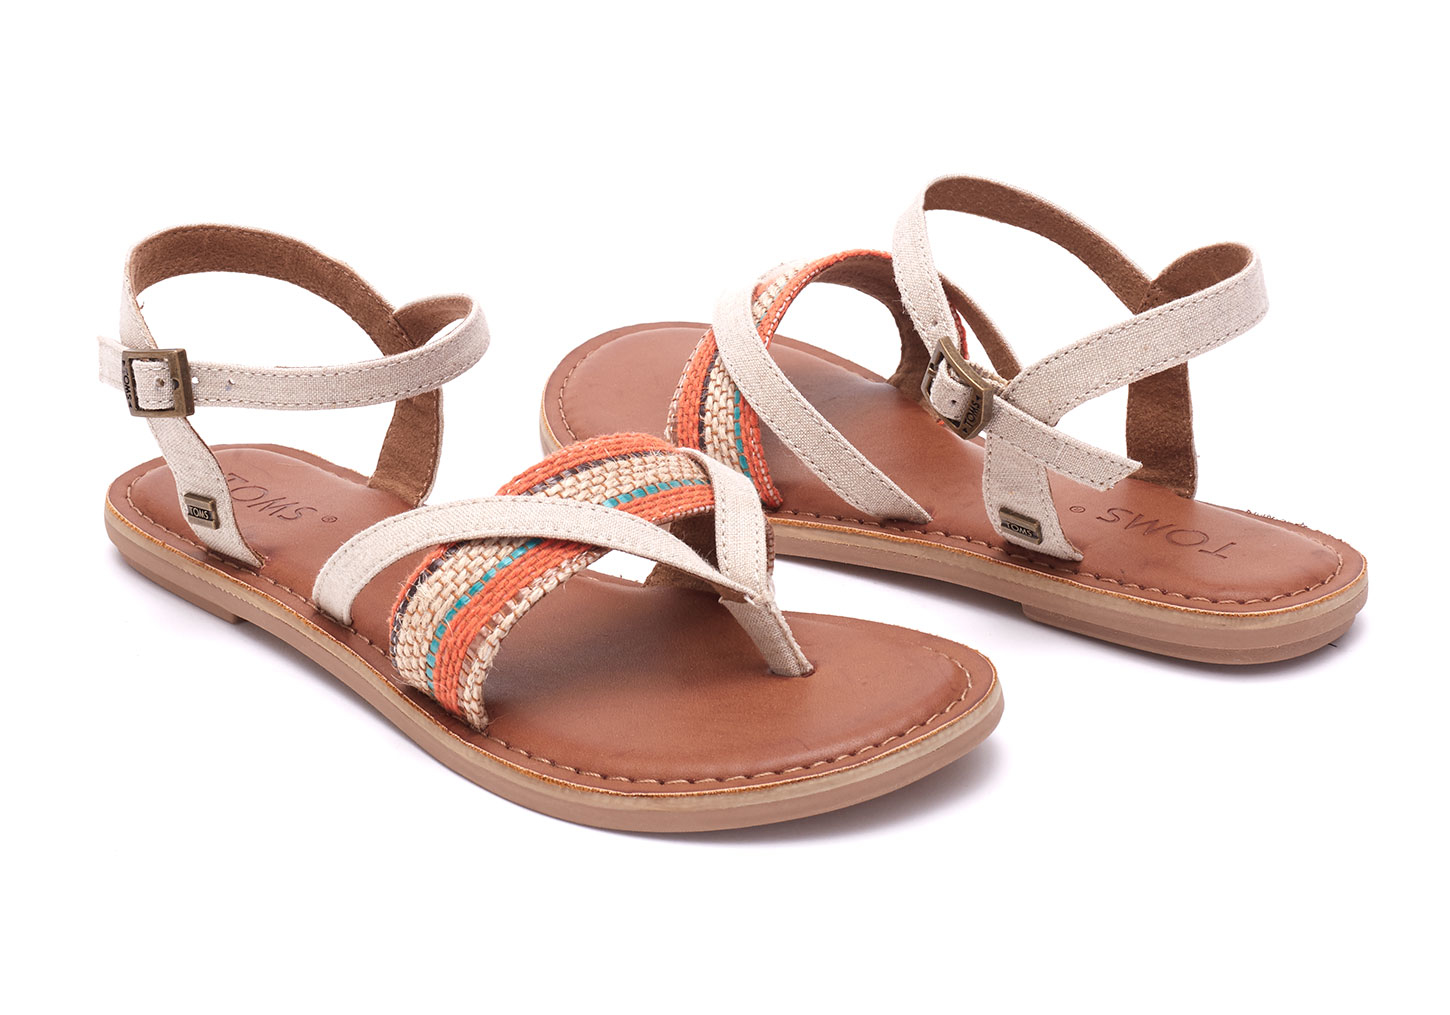 32c3ef62c86 Lyst - TOMS Natural Multi Woven Stripe Women s Lexie Sandals in Natural